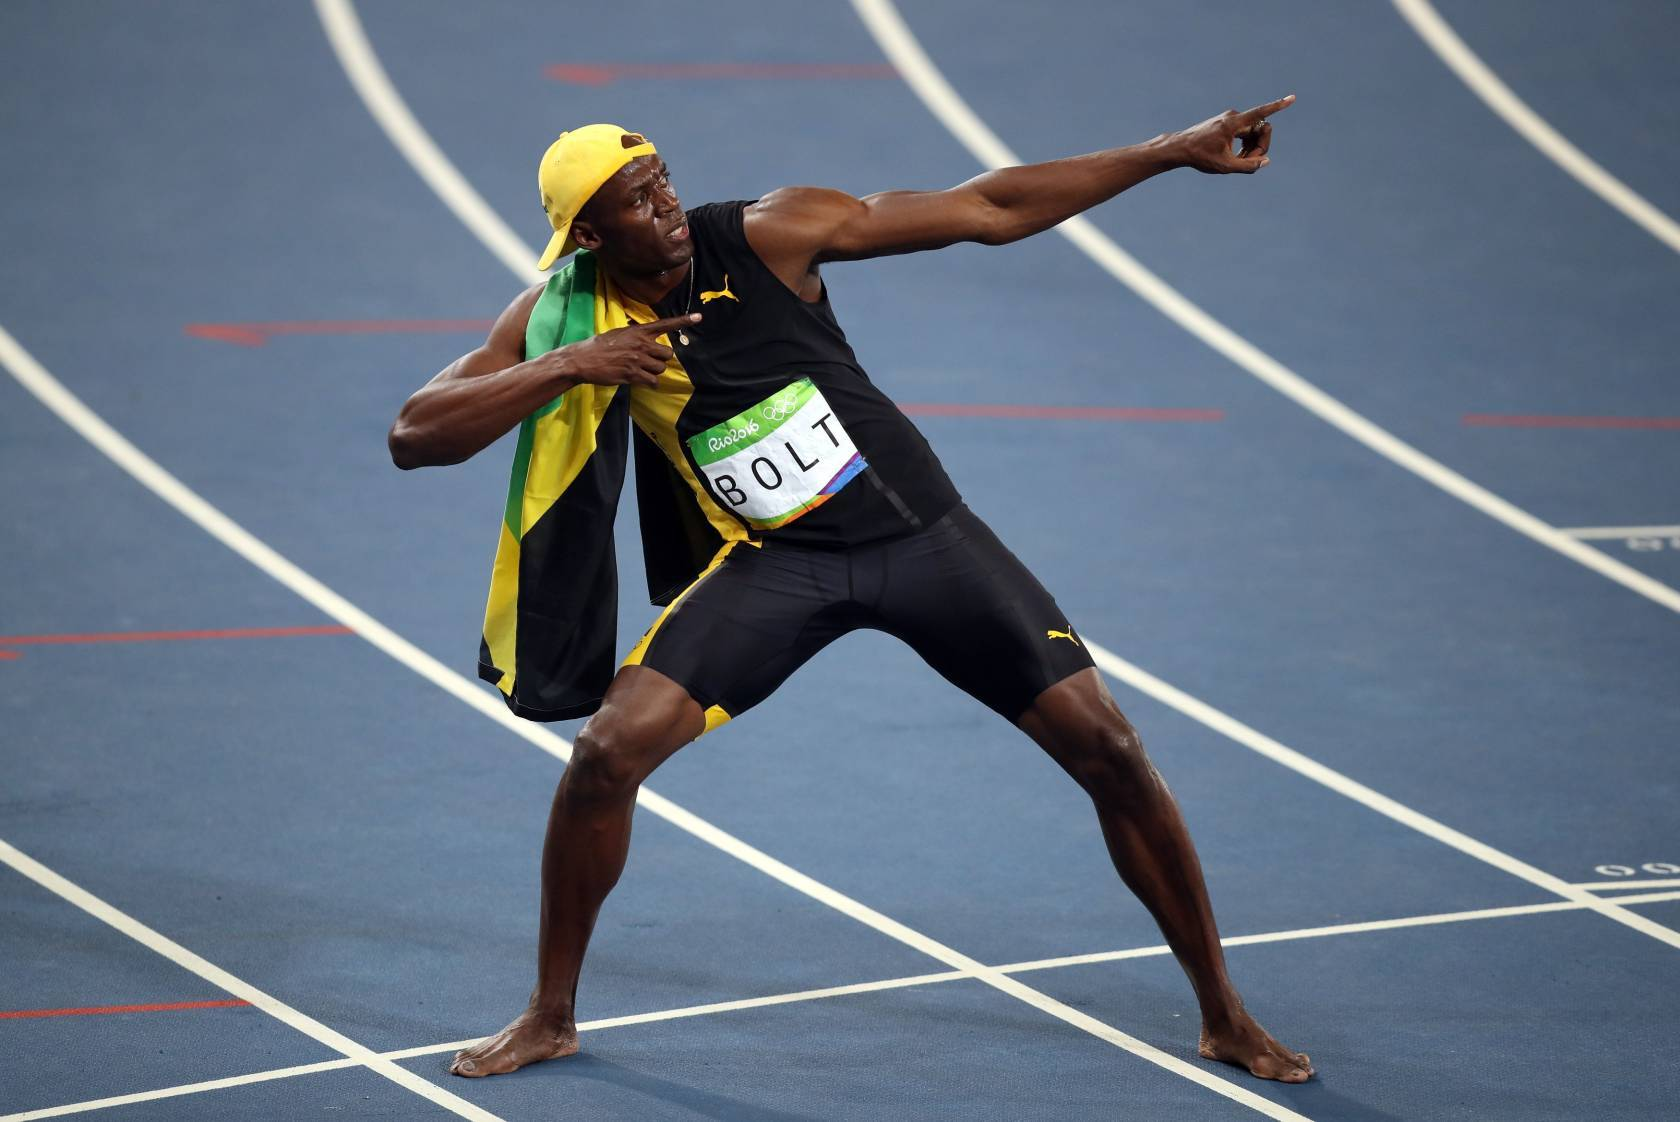 Jamaica's Usain Bolt celebrates winning the men's 100m final at the Olympics Stadium on the ninth day of the Rio Olympics Games, Brazil.